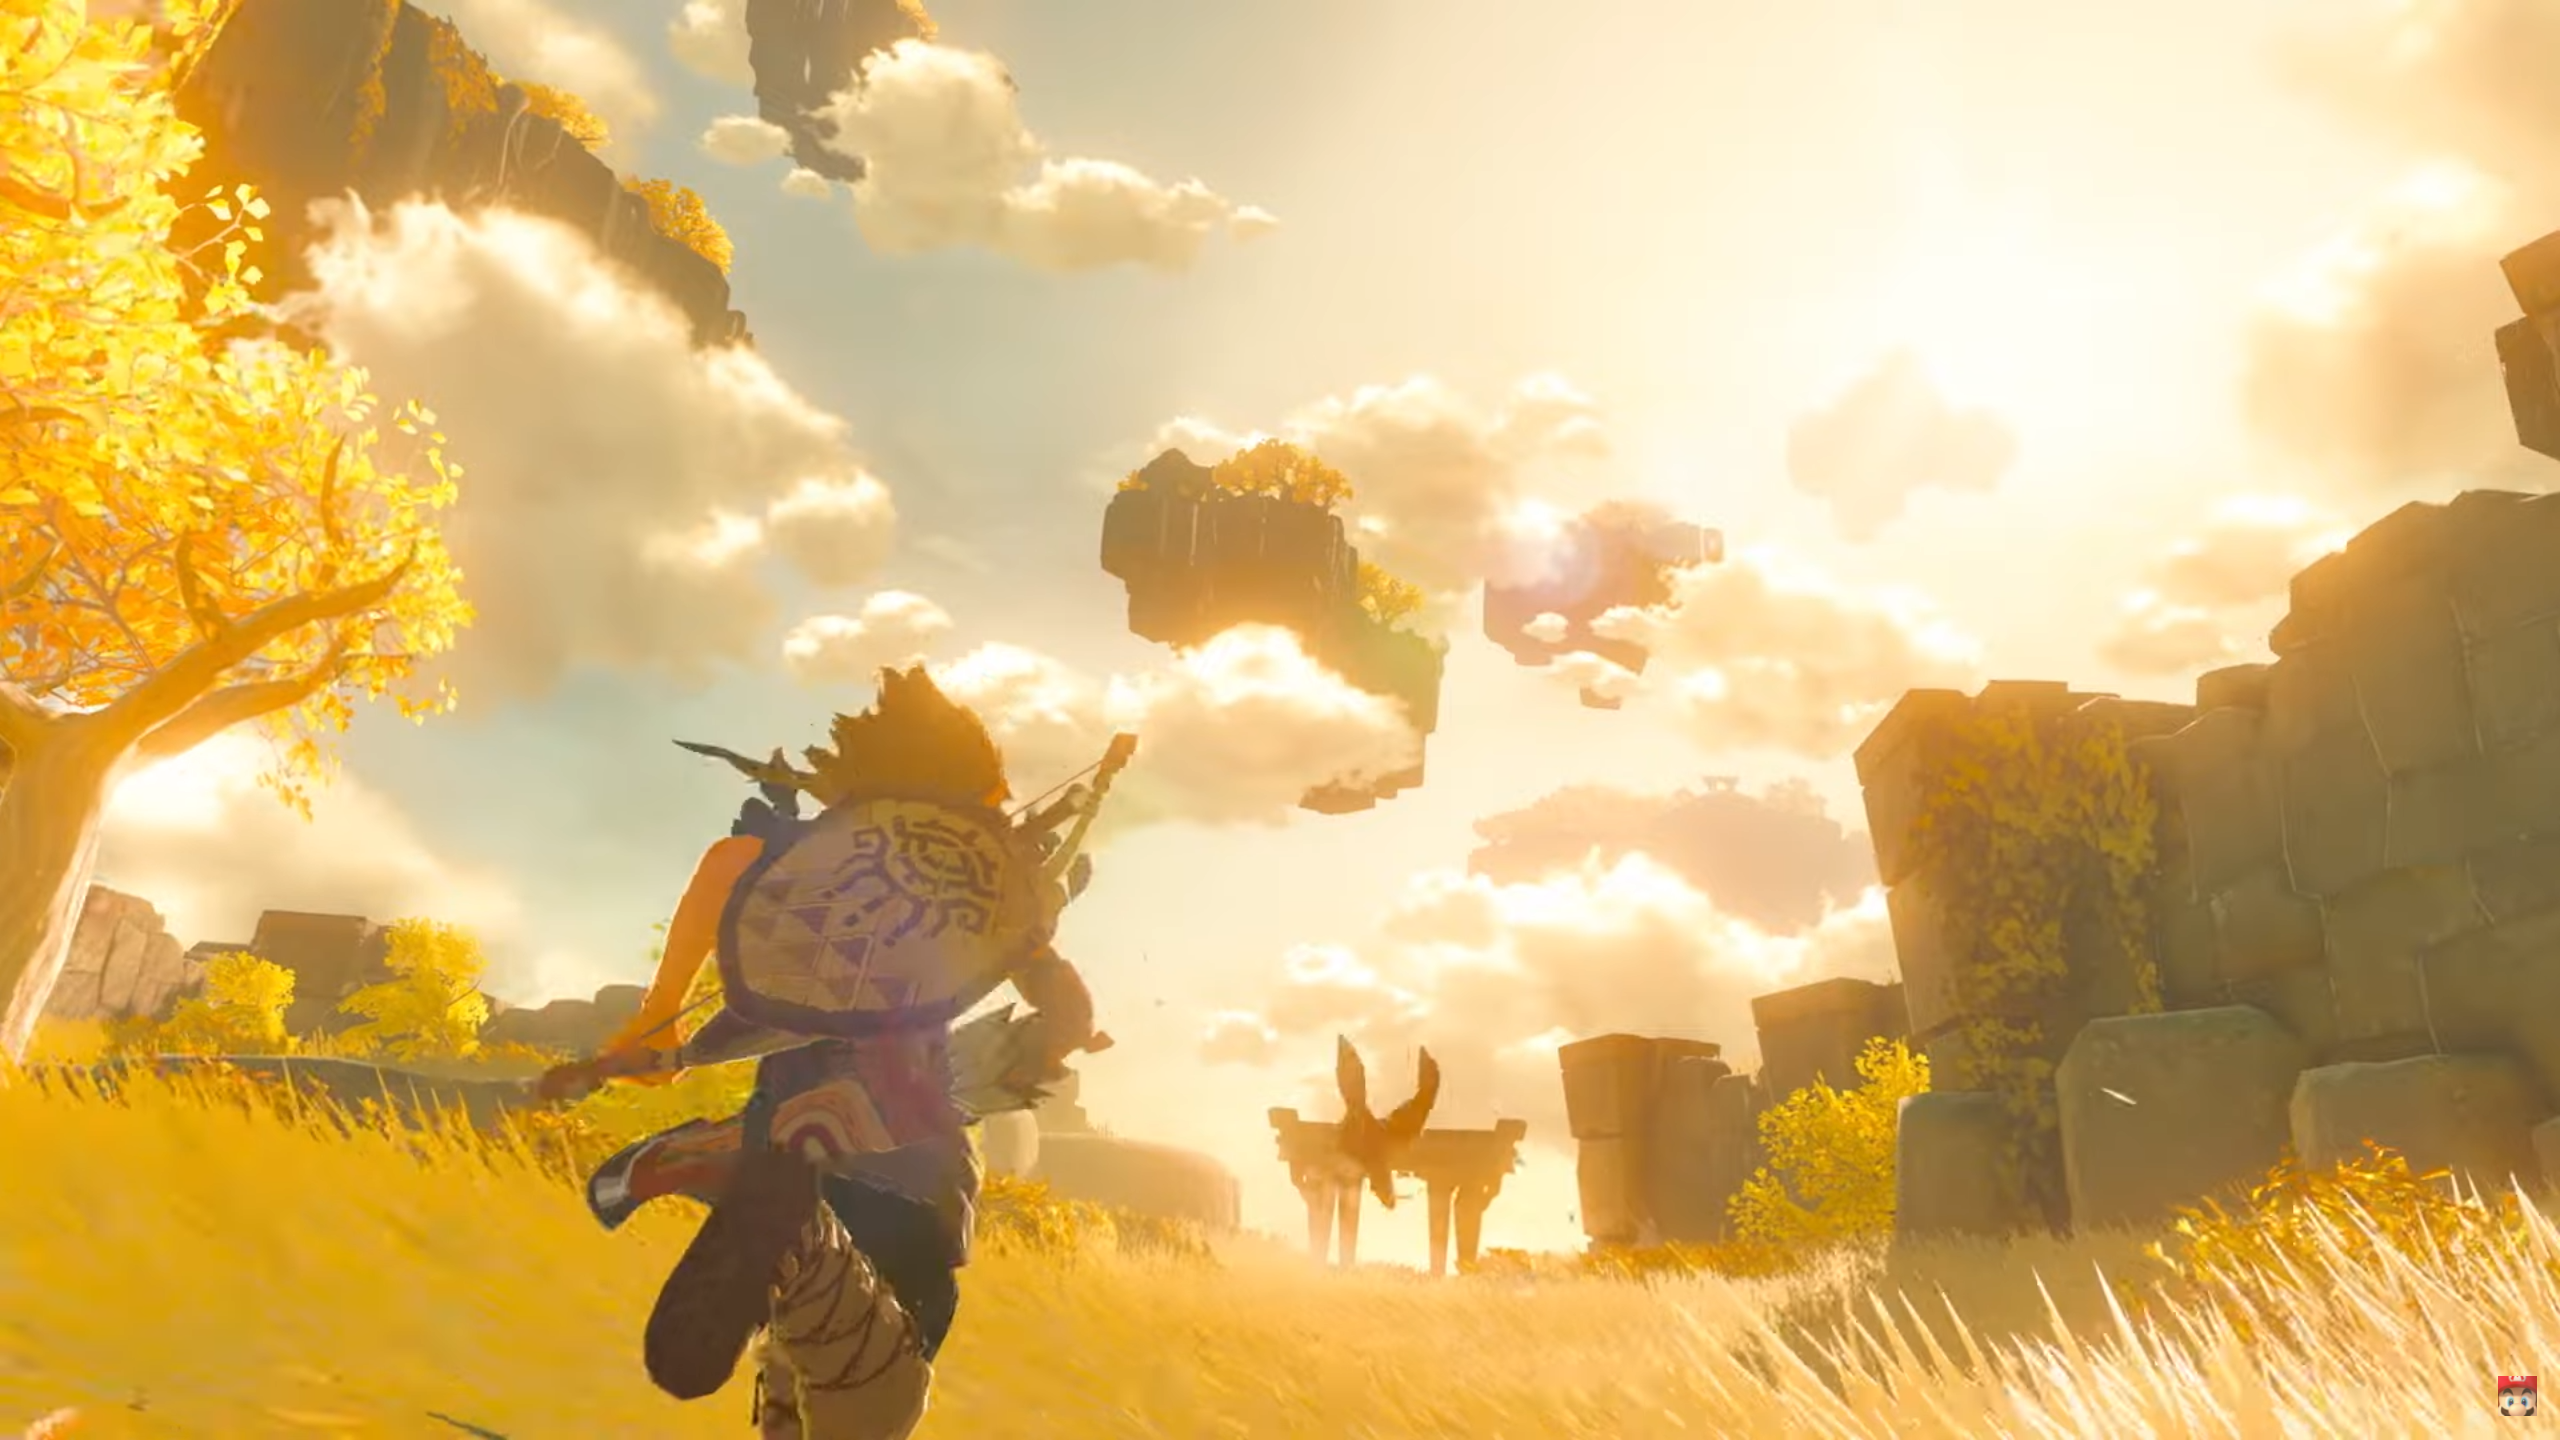 Breath of the Wild 2 running across the fields